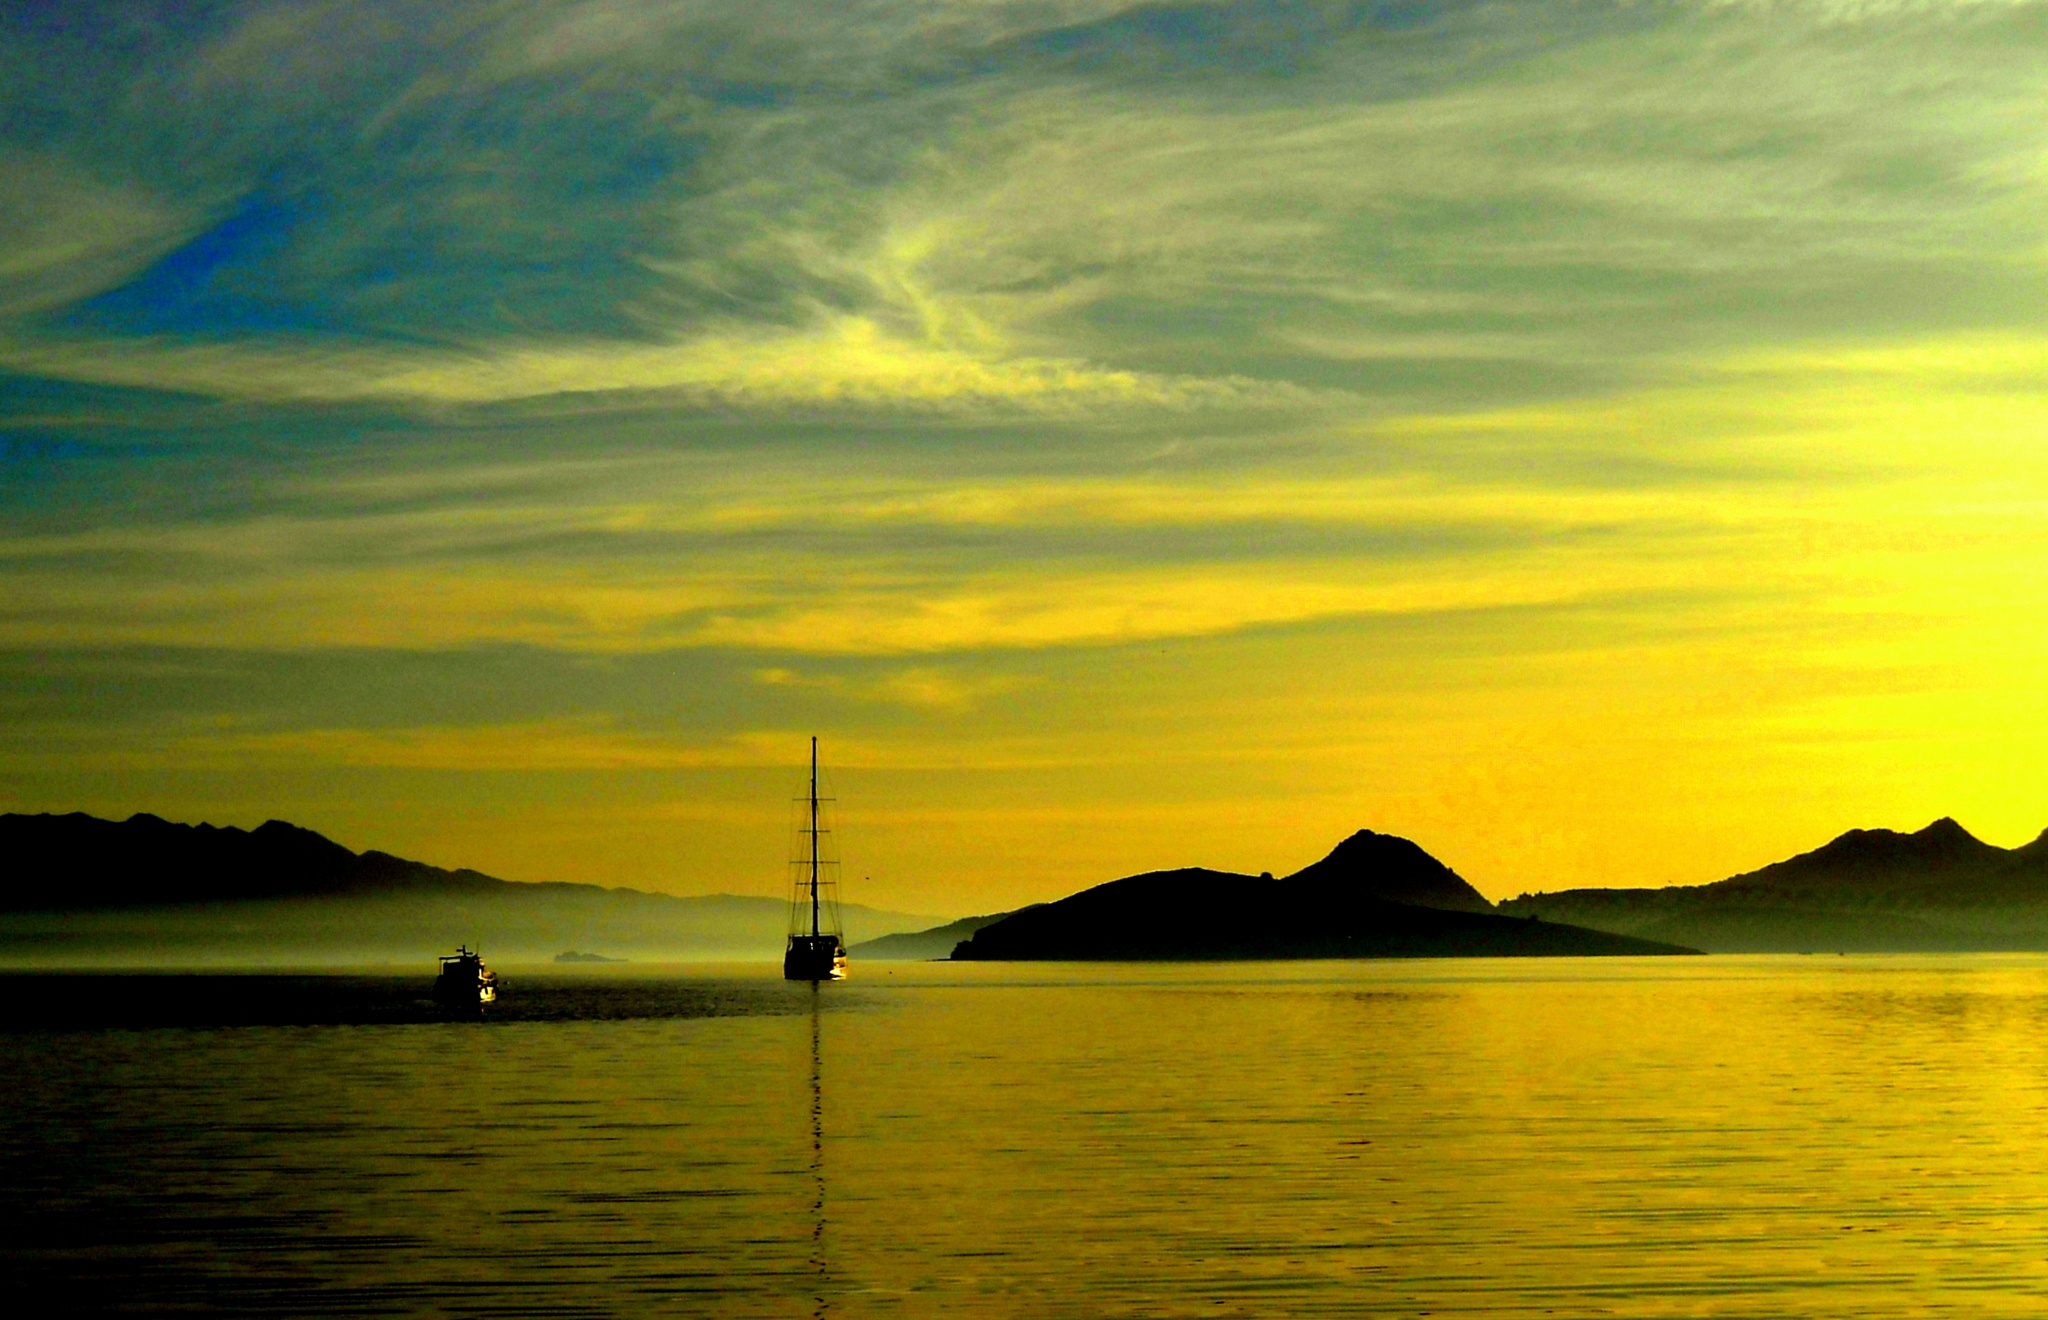 ANOTHER BEAUTIFUL EVENING VIEW OF BITEZ BAY, BODRUM by Akin Saner